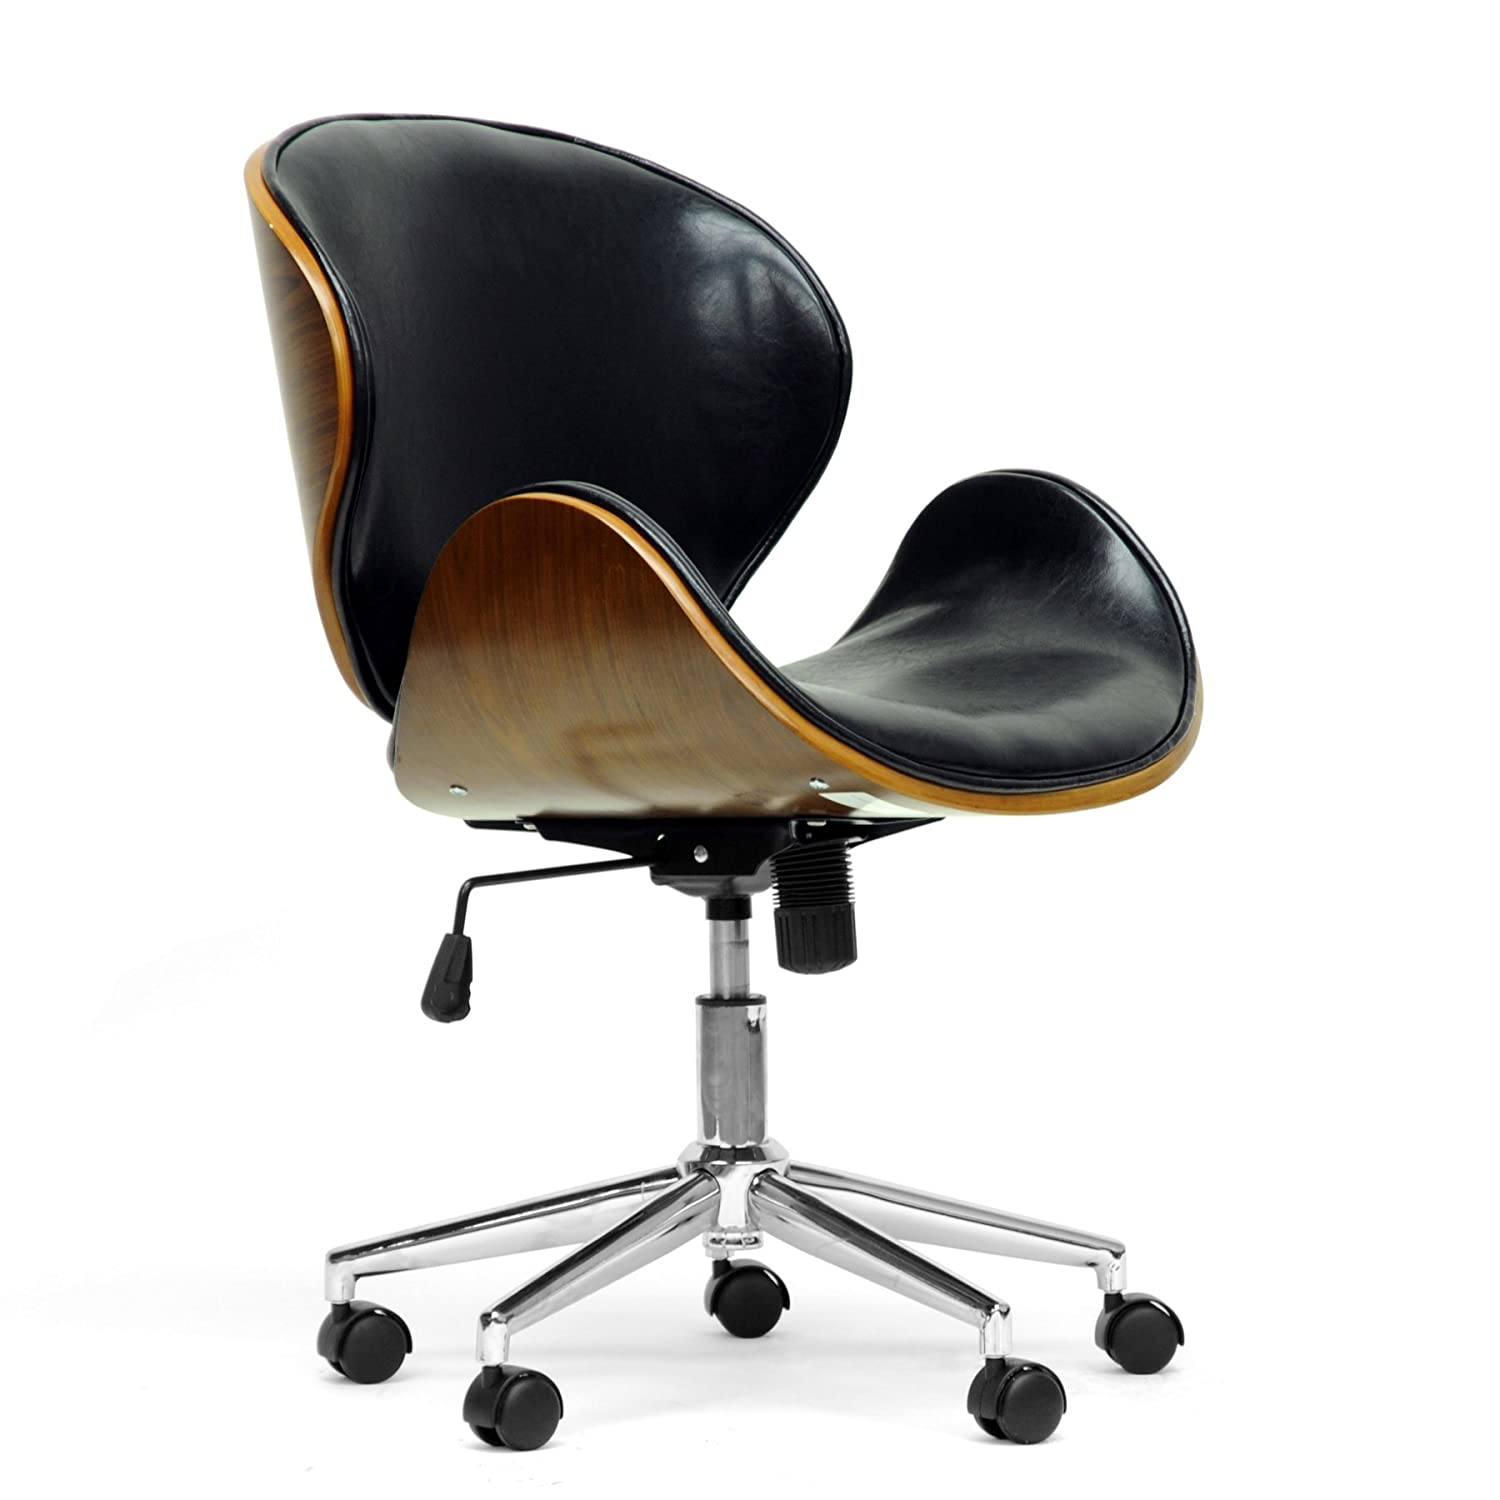 amazoncom baxton studio bruce modern office chair walnutblack kitchen dining. amazoncom baxton studio bruce modern office chair walnutblack